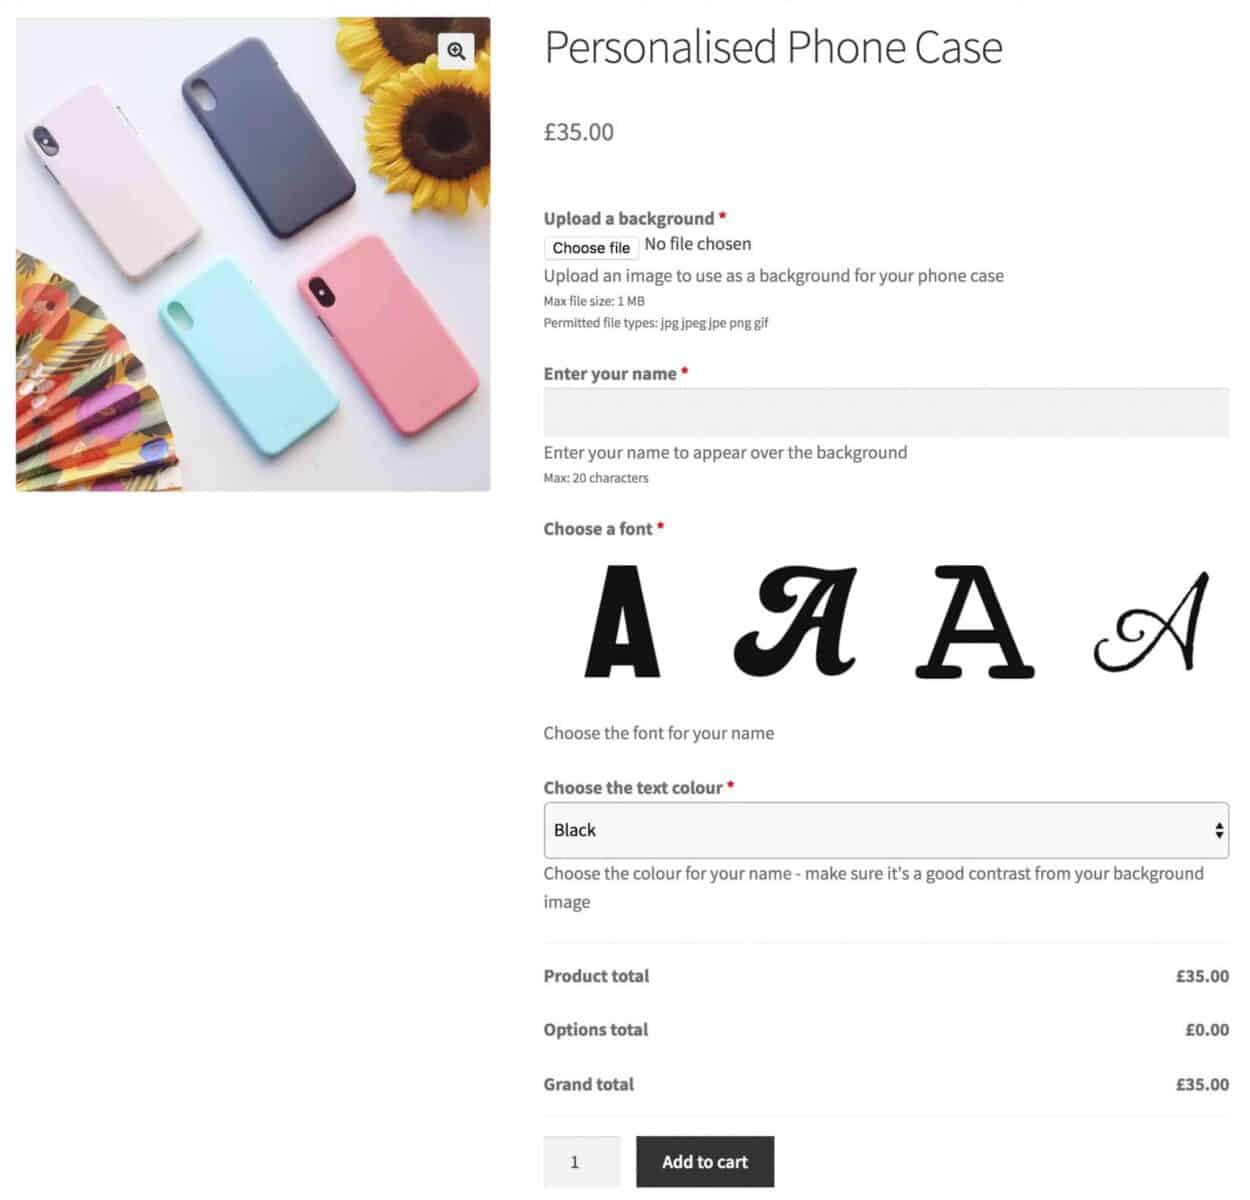 WooCommerce product customizer for personalized phone cases